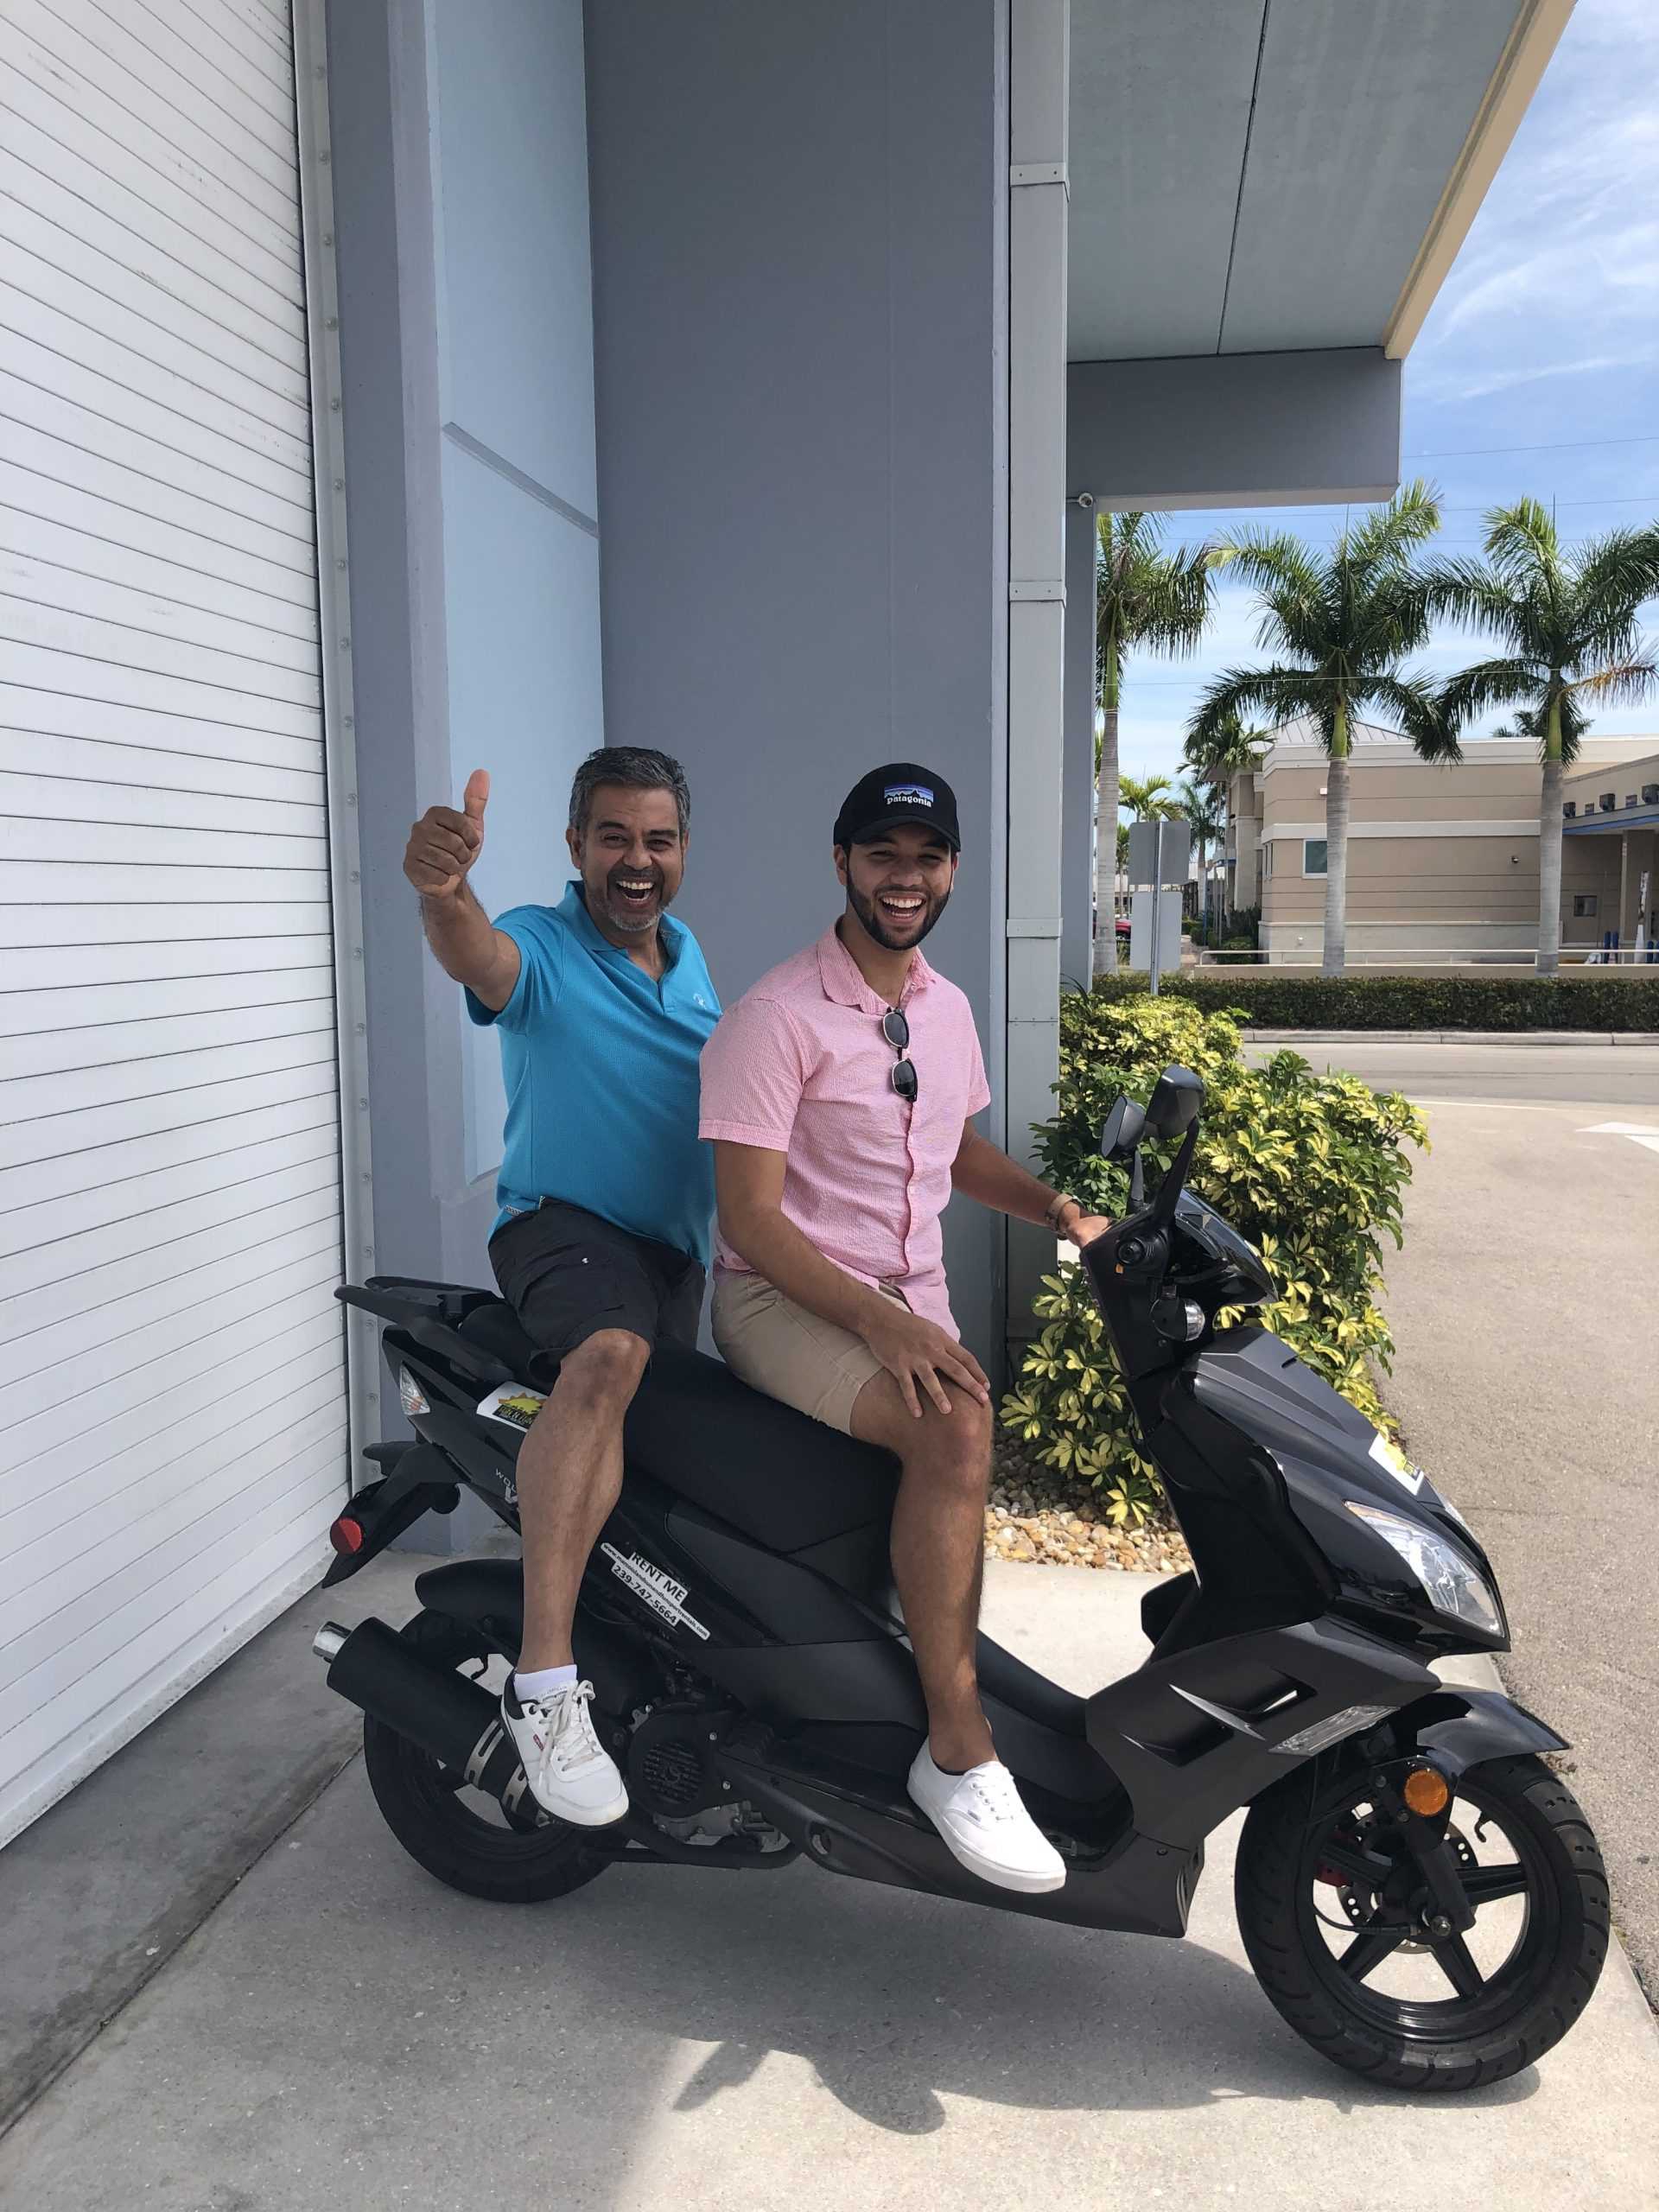 Two men pose and give thumbs up on black scooter on Marco Island